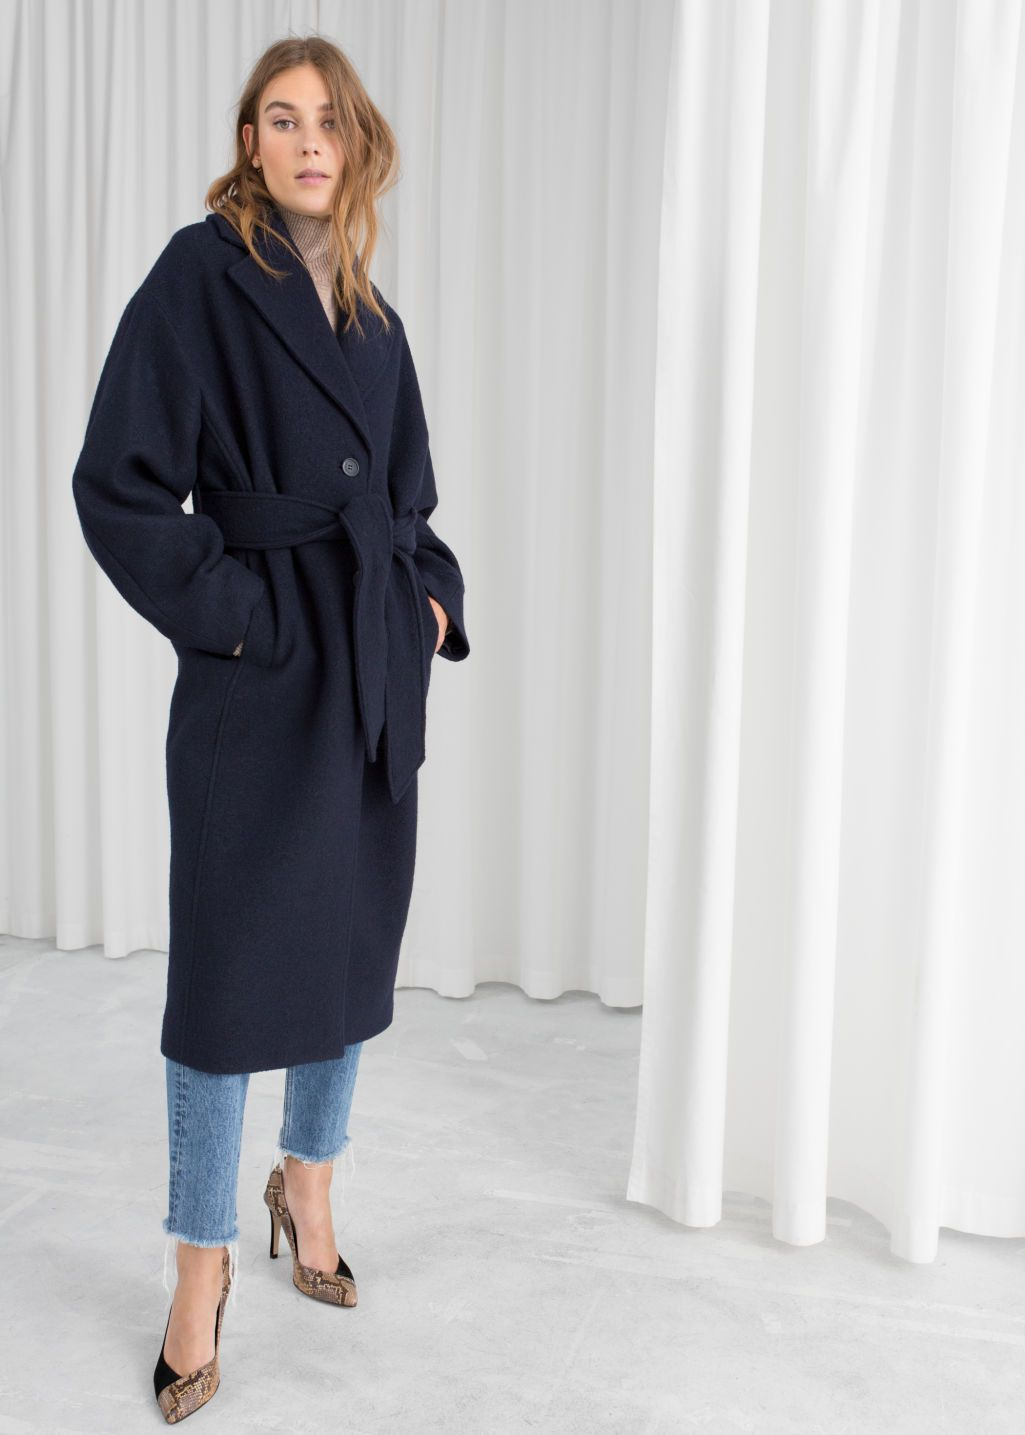 Belted Wool Coat   Belted coat outfit, Wool coat, Navy wool coat